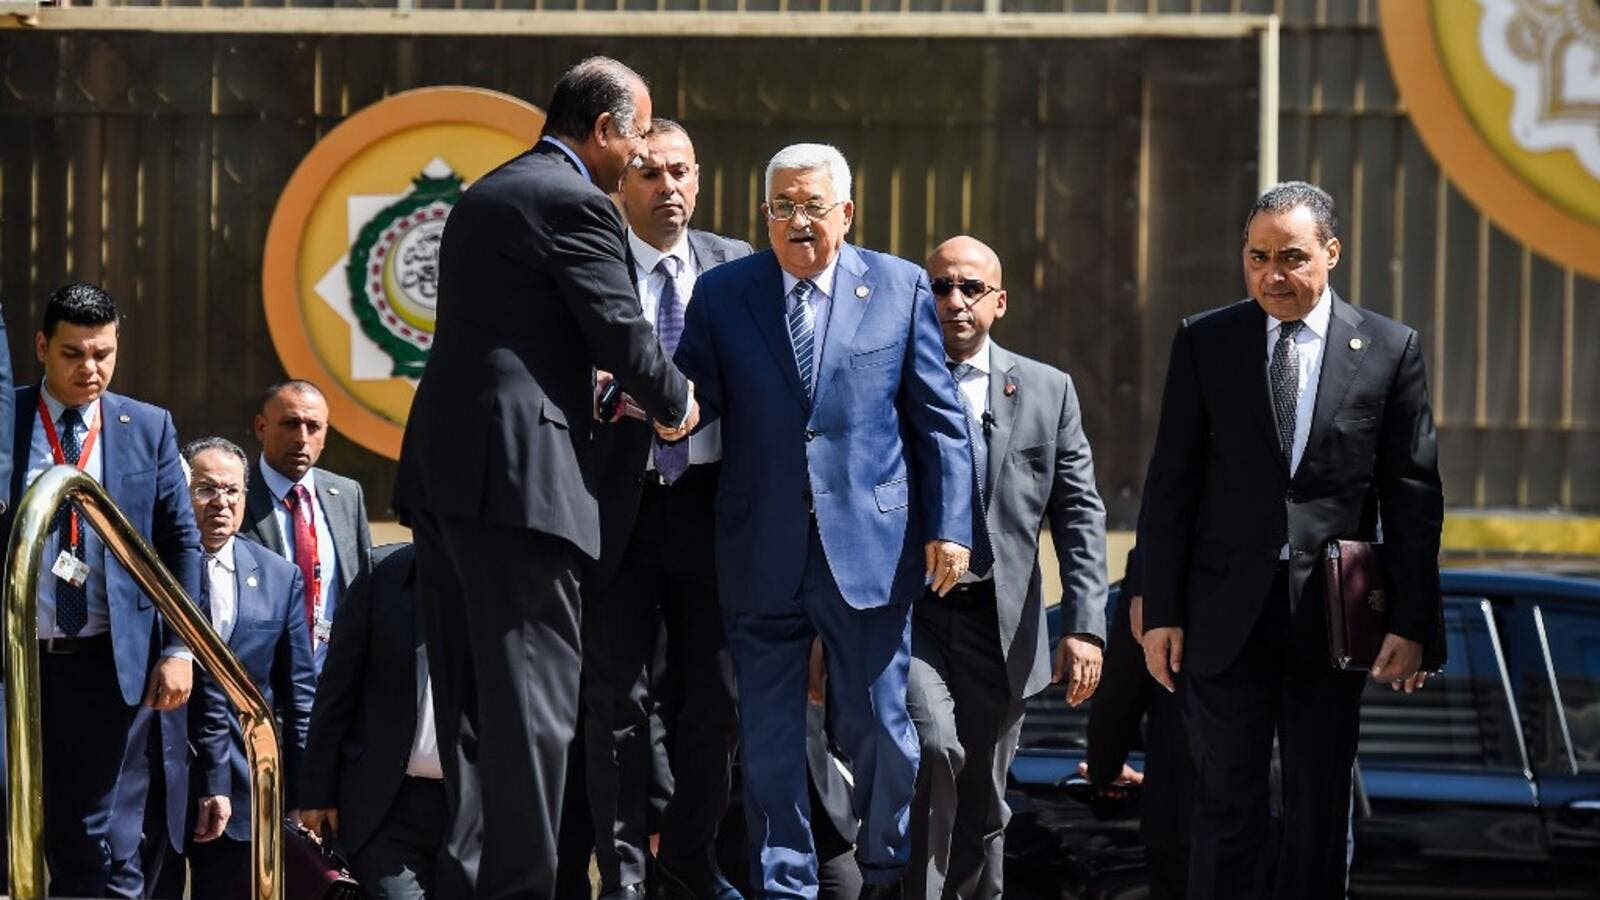 Palestinian president Mahmoud Abbas (C) is greeted upon his arrival at the Arab League headquarters in Cairo, on April 21, 2019. (MOHAMED EL-SHAHED / AFP)